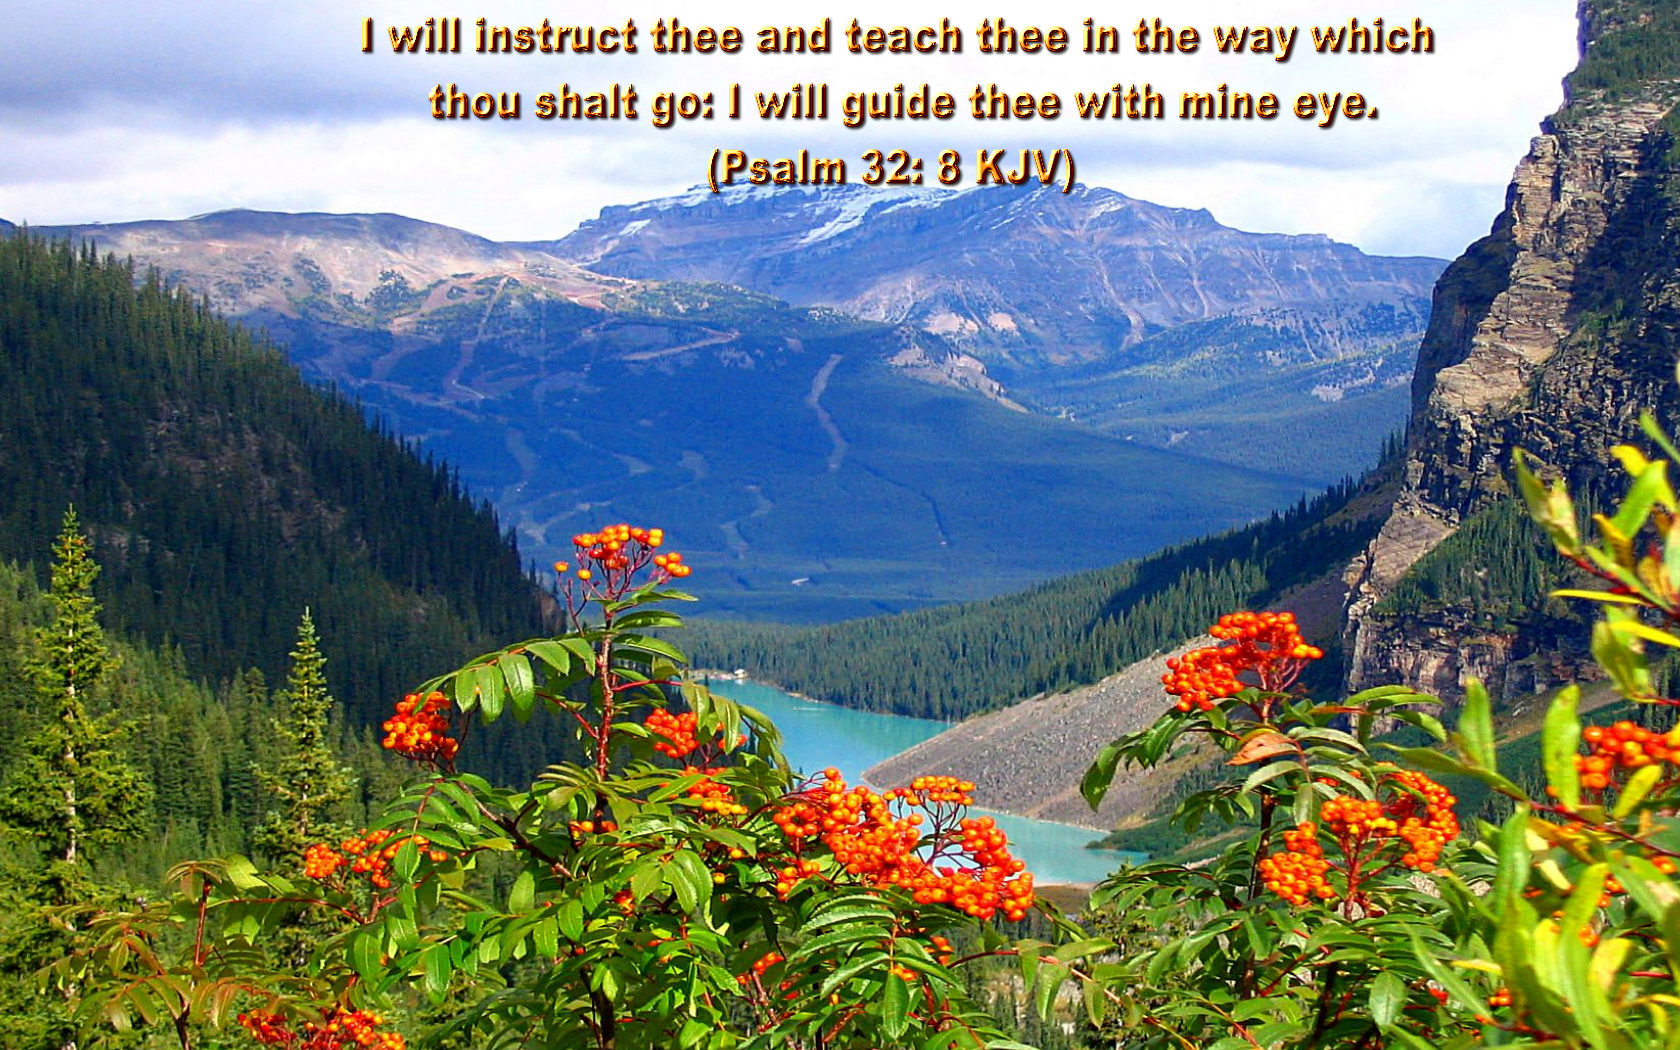 Bible quotes pictures and bible quotes images 41 i will instruct thee and teach thee in the way which thou shalt go i thecheapjerseys Choice Image